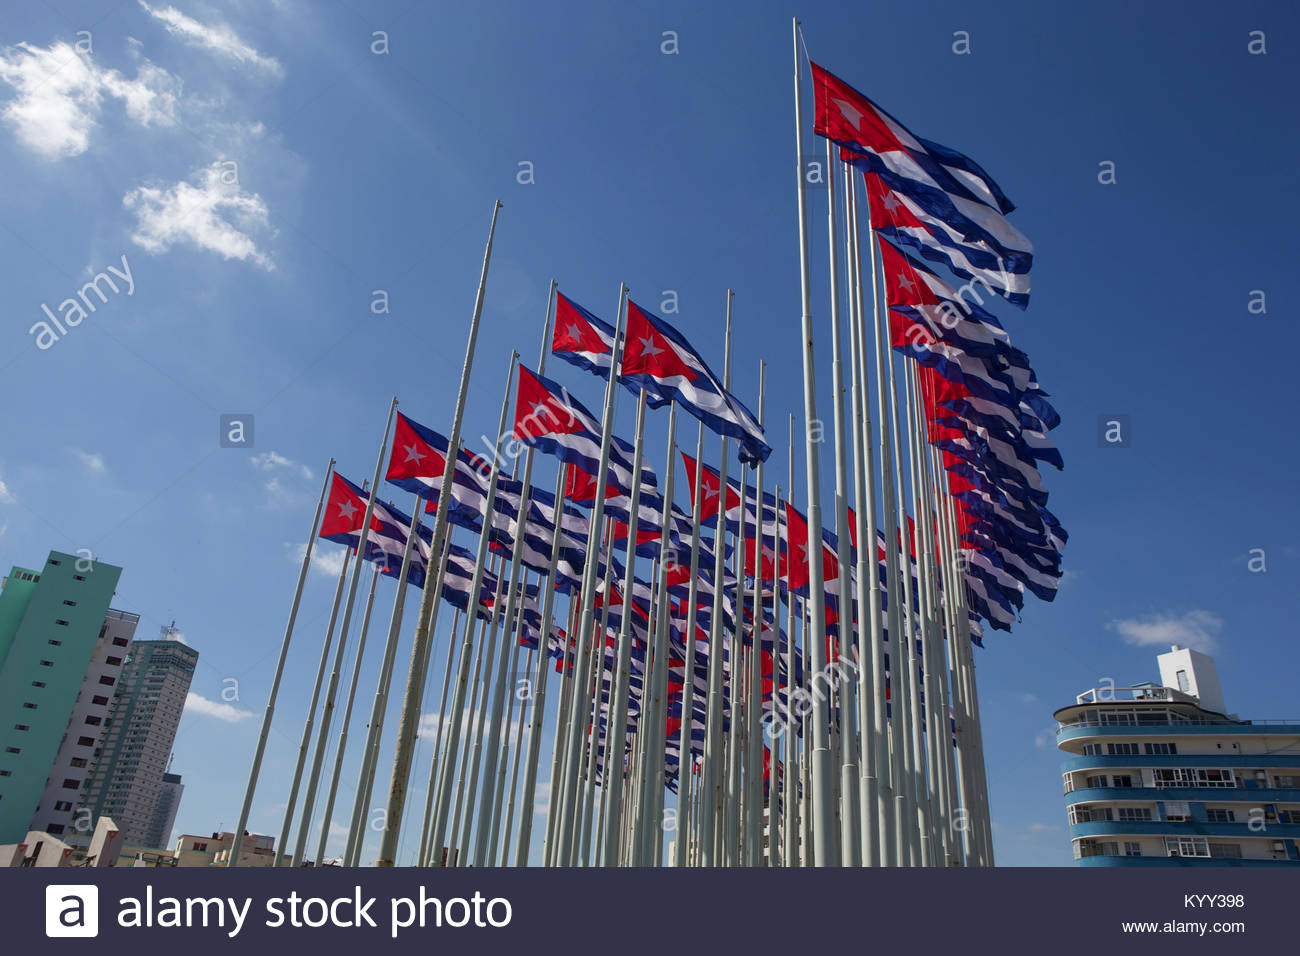 Low angle view of Cuban flags waving against blue sky in city - Stock Image